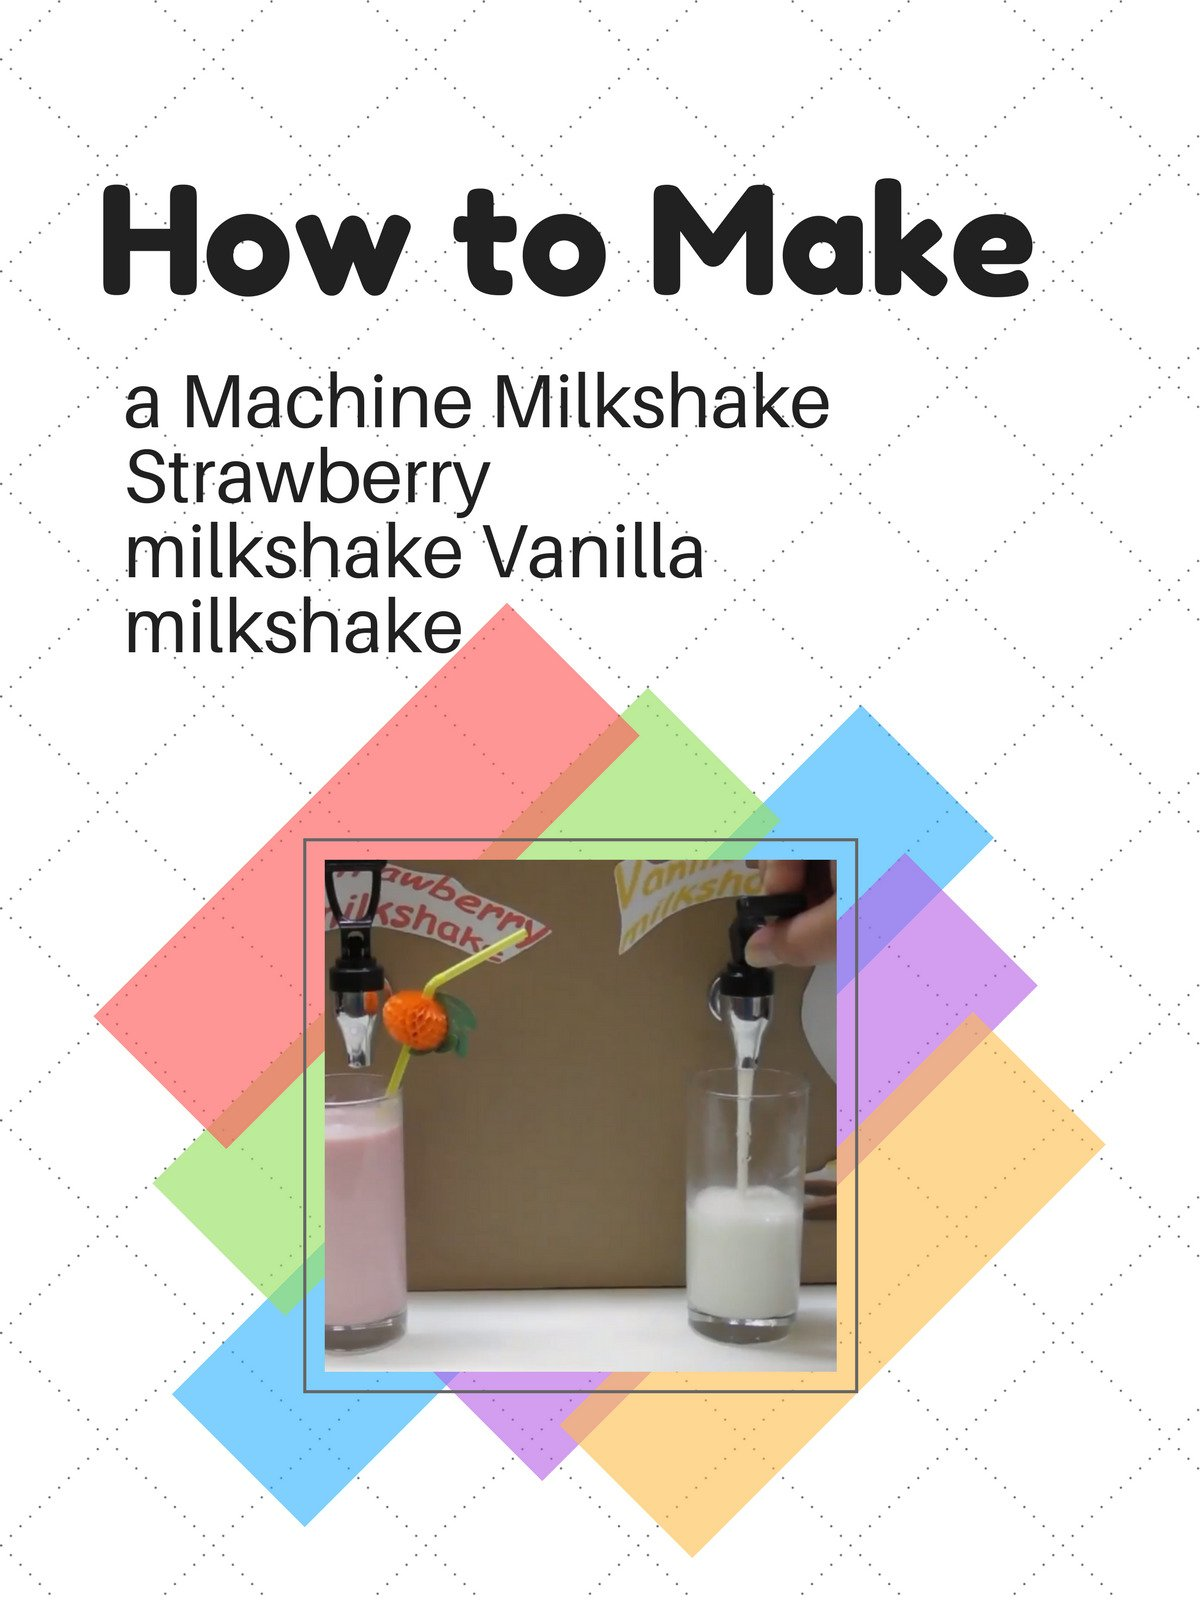 How to make a Machine Milkshake Strawberry milkshake Vanilla milkshake